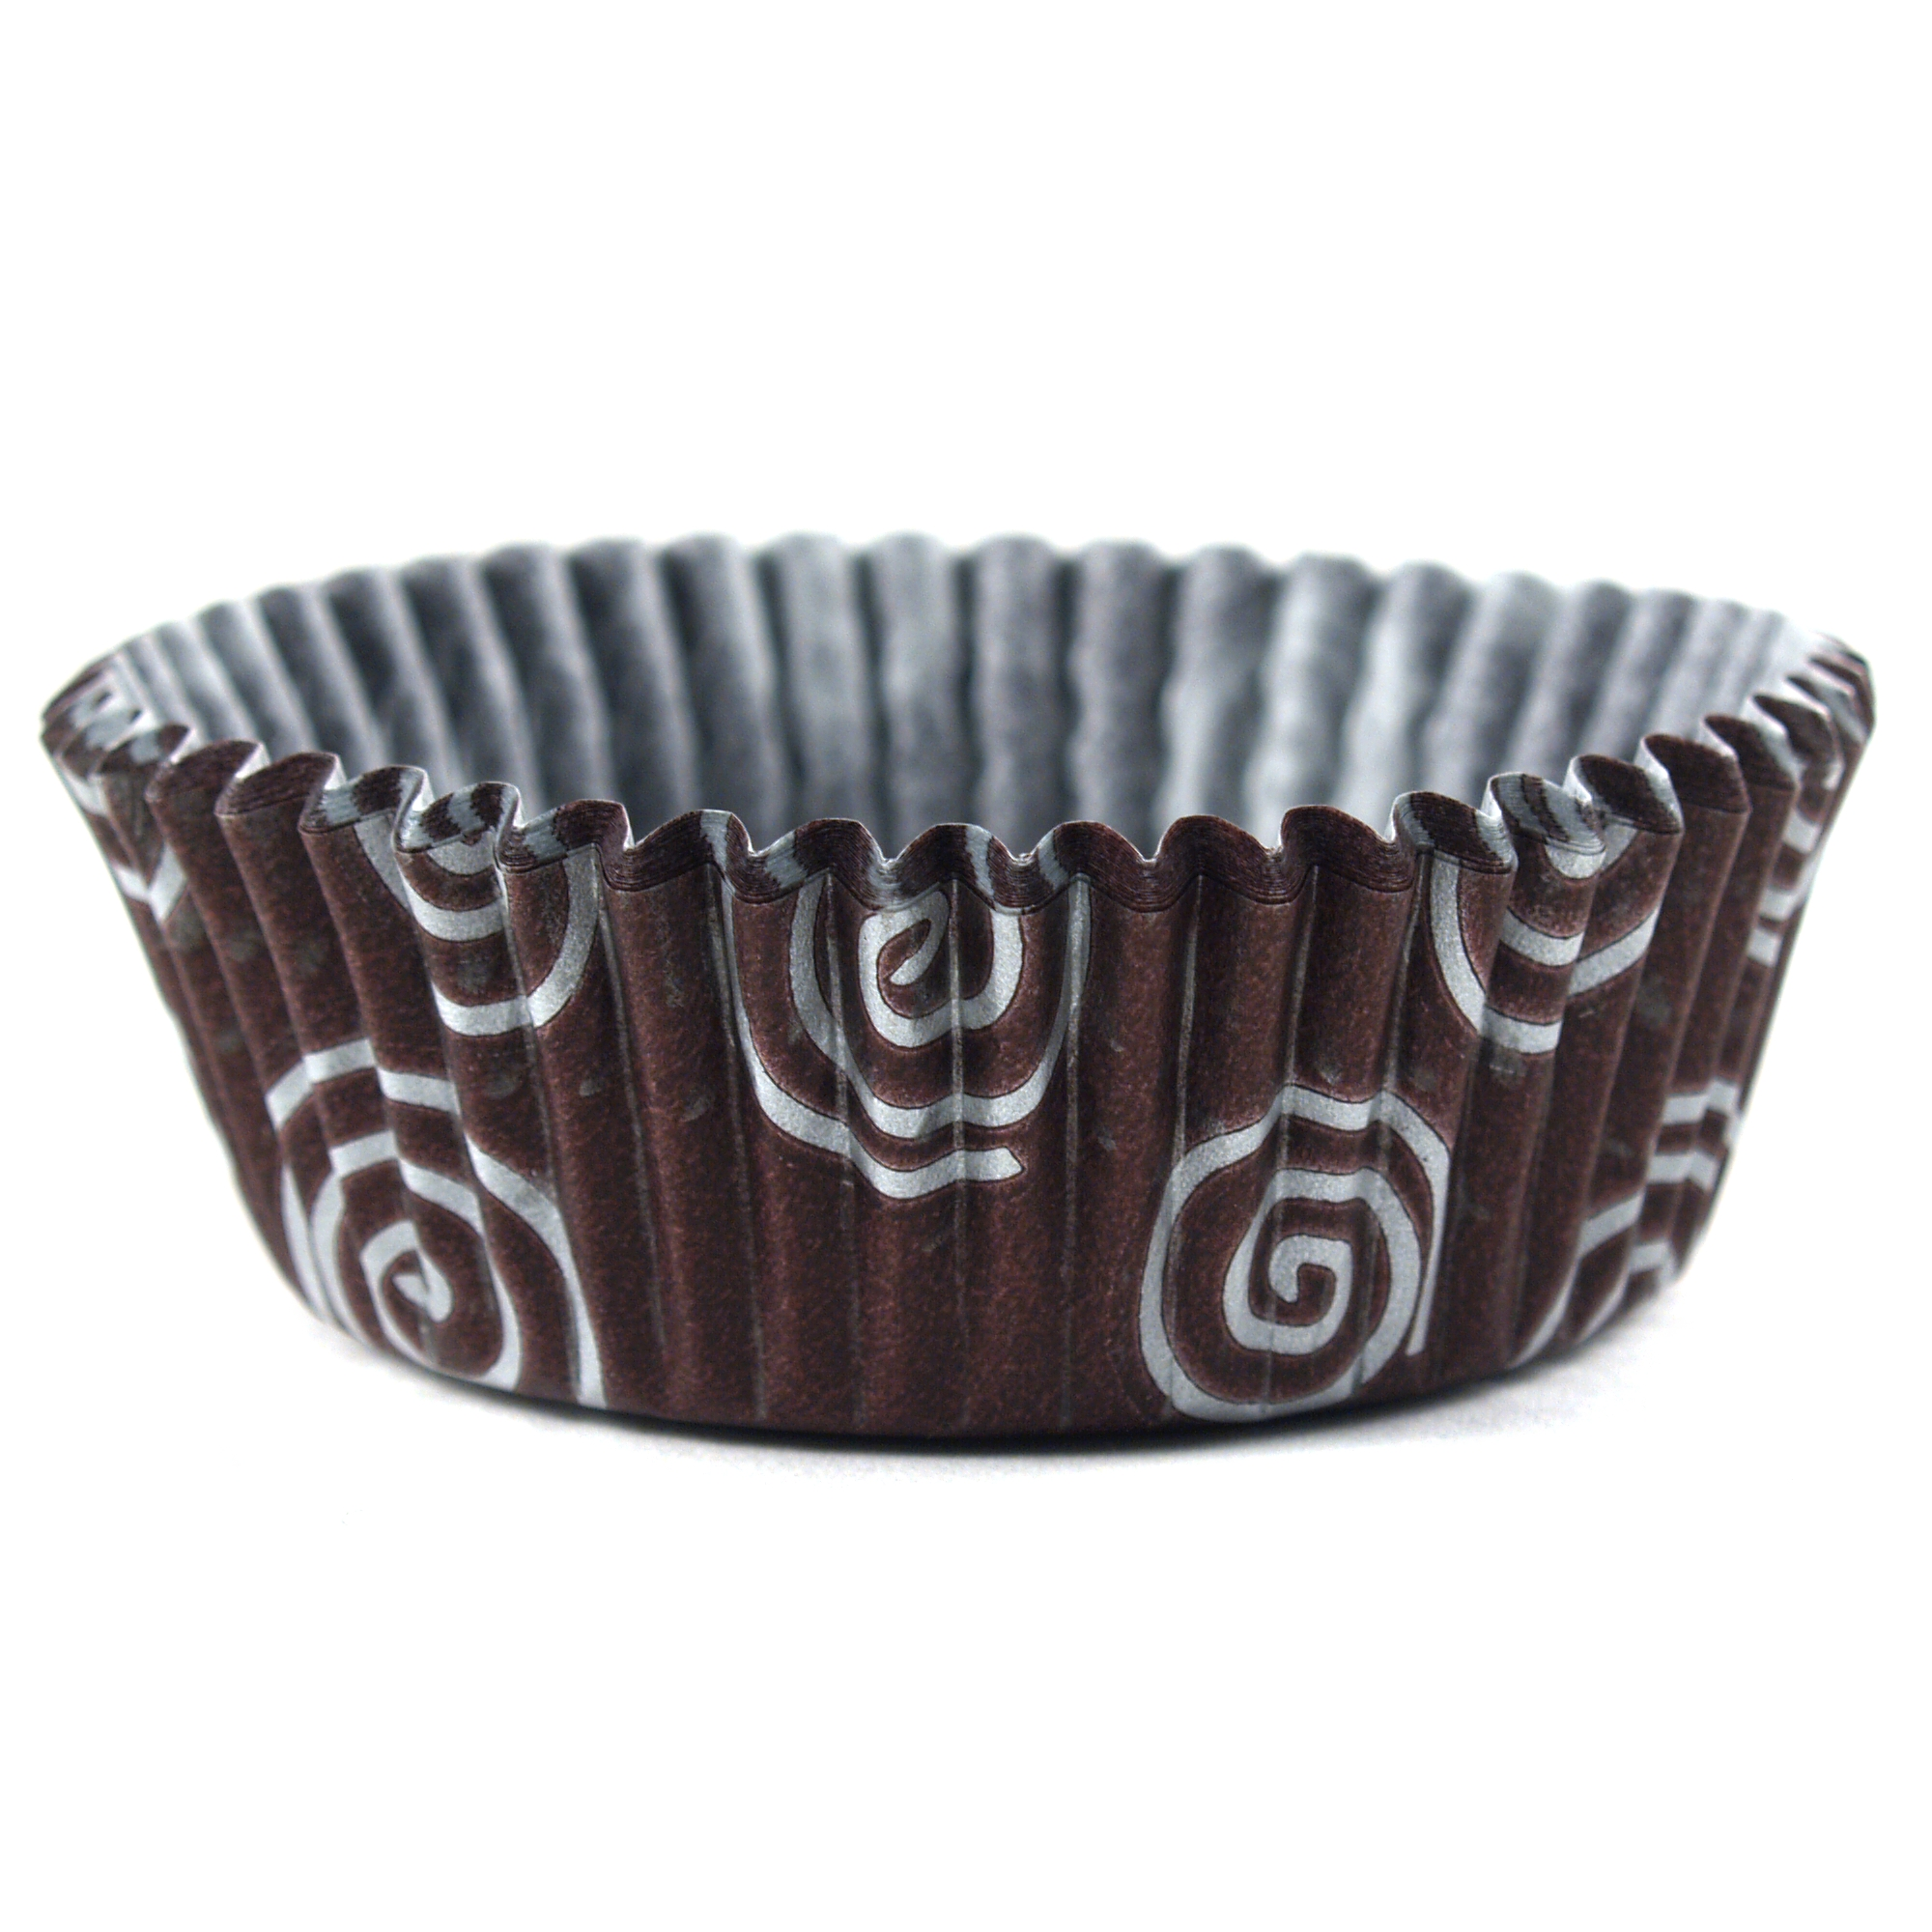 Cupcake Creations Brown and Silver Swirl Brownie Baking Cup, Set of 32